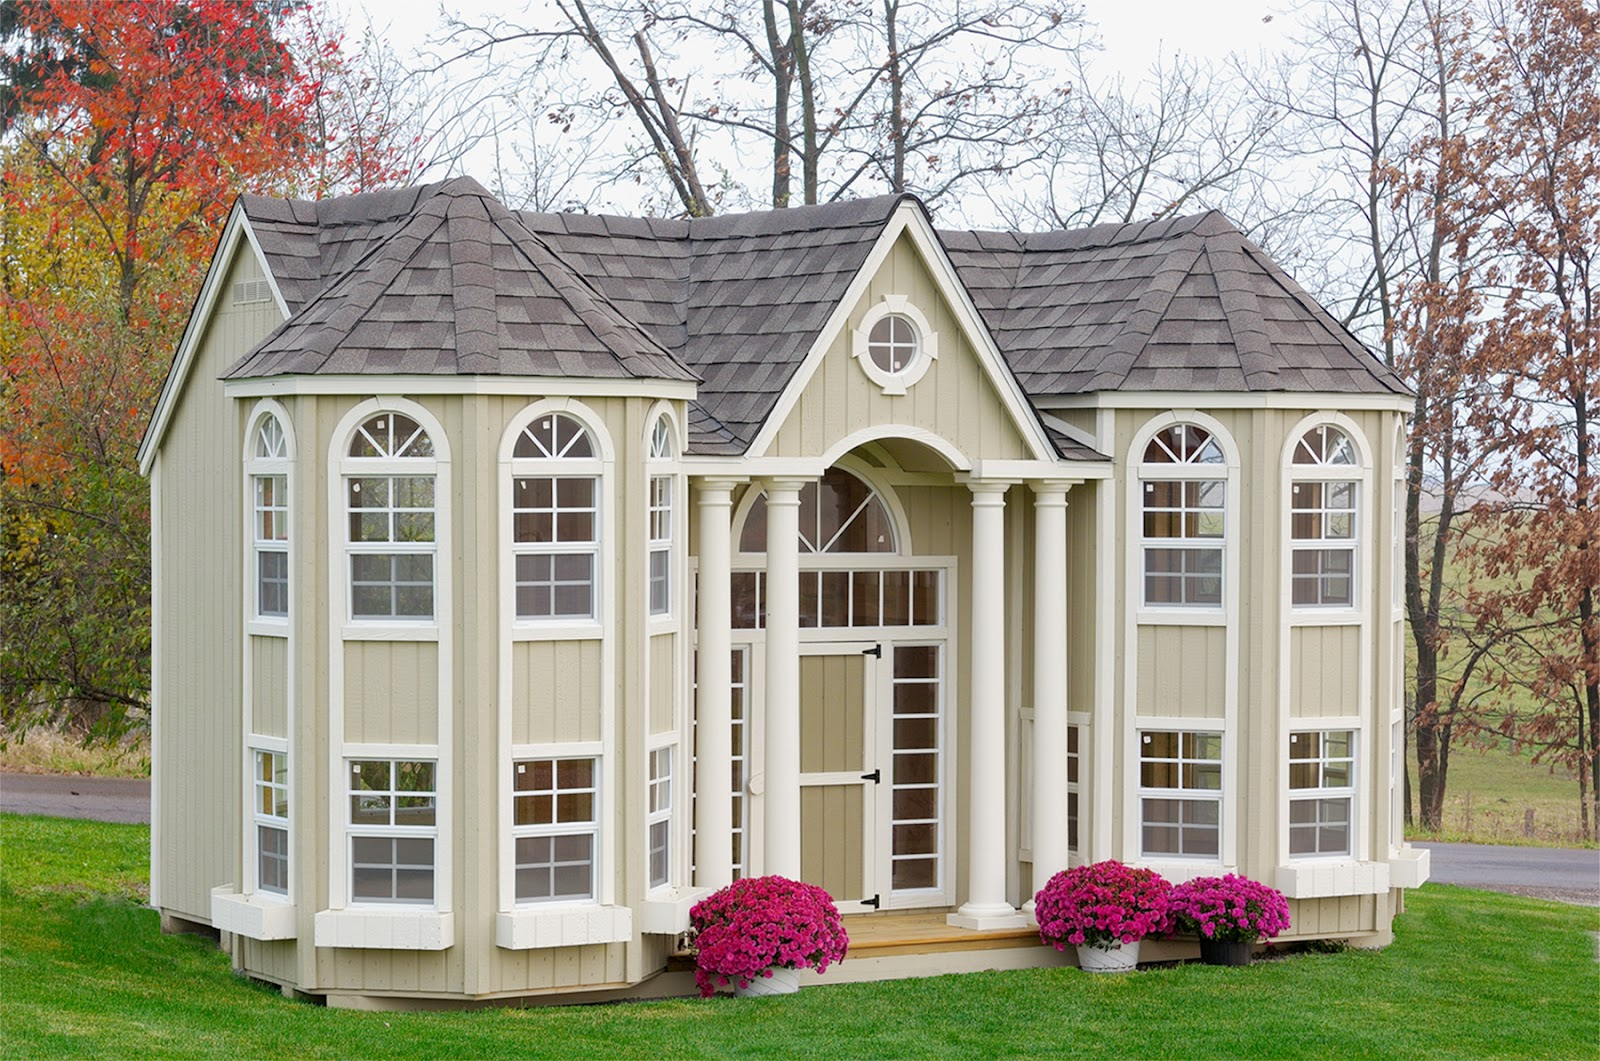 size plans Adult playhouse